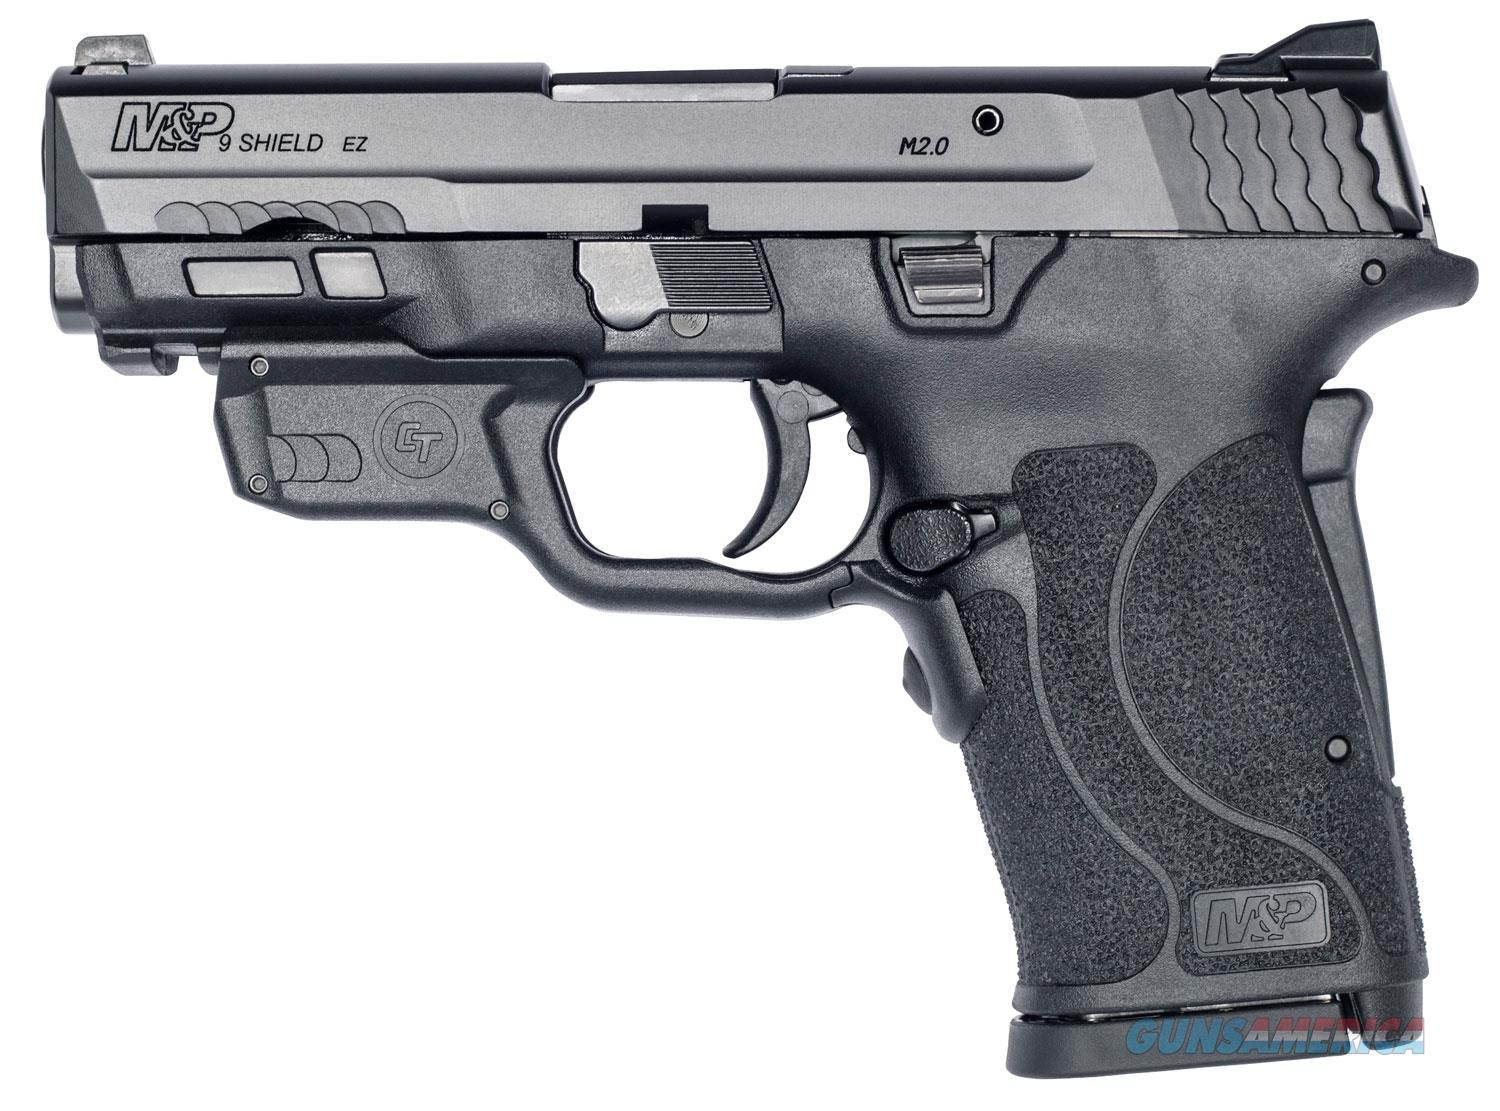 """Smith & Wesson 12439 M&P 9 Shield EZ M2.0 9mm Luger 3.68"""" 8+1 Black Polymer Grip No Thumb Safety Red Crimson Trace Laser  Guns > Pistols > Smith & Wesson Pistols - Autos > Shield"""